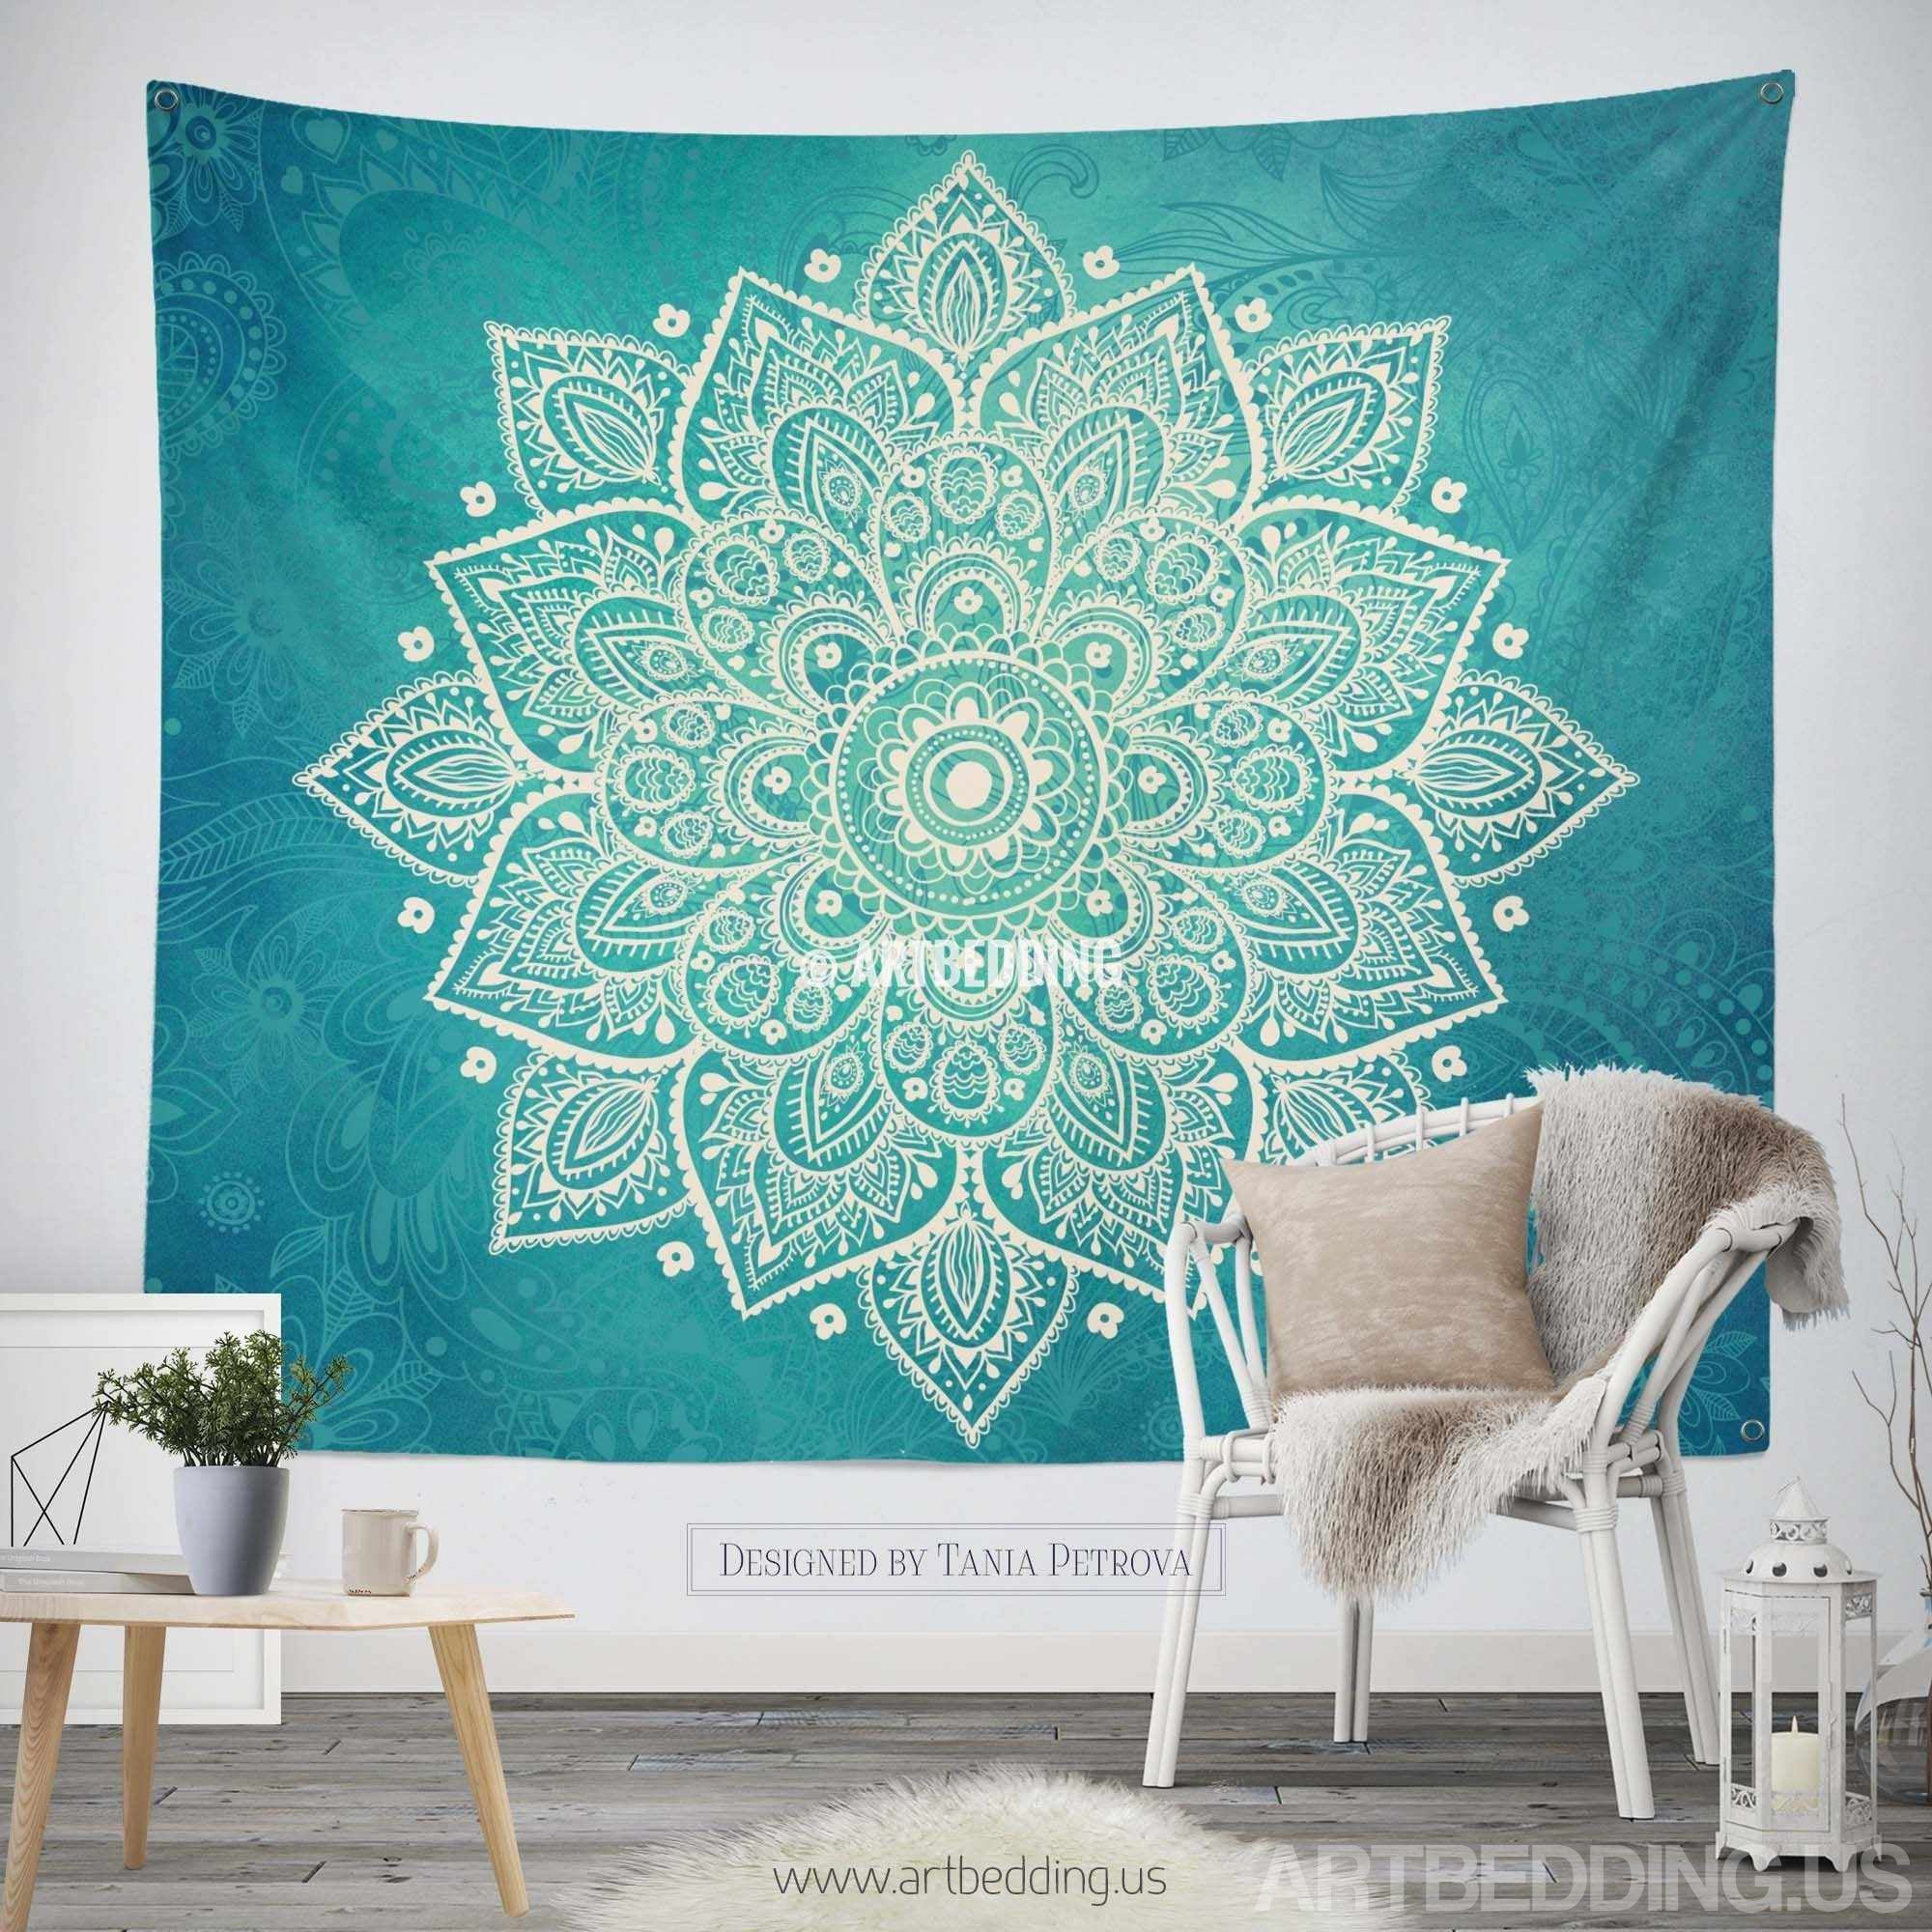 Tapestry Wall Hanging bohemian tapestry, mandala tapestry wall hanging, bohemian decor